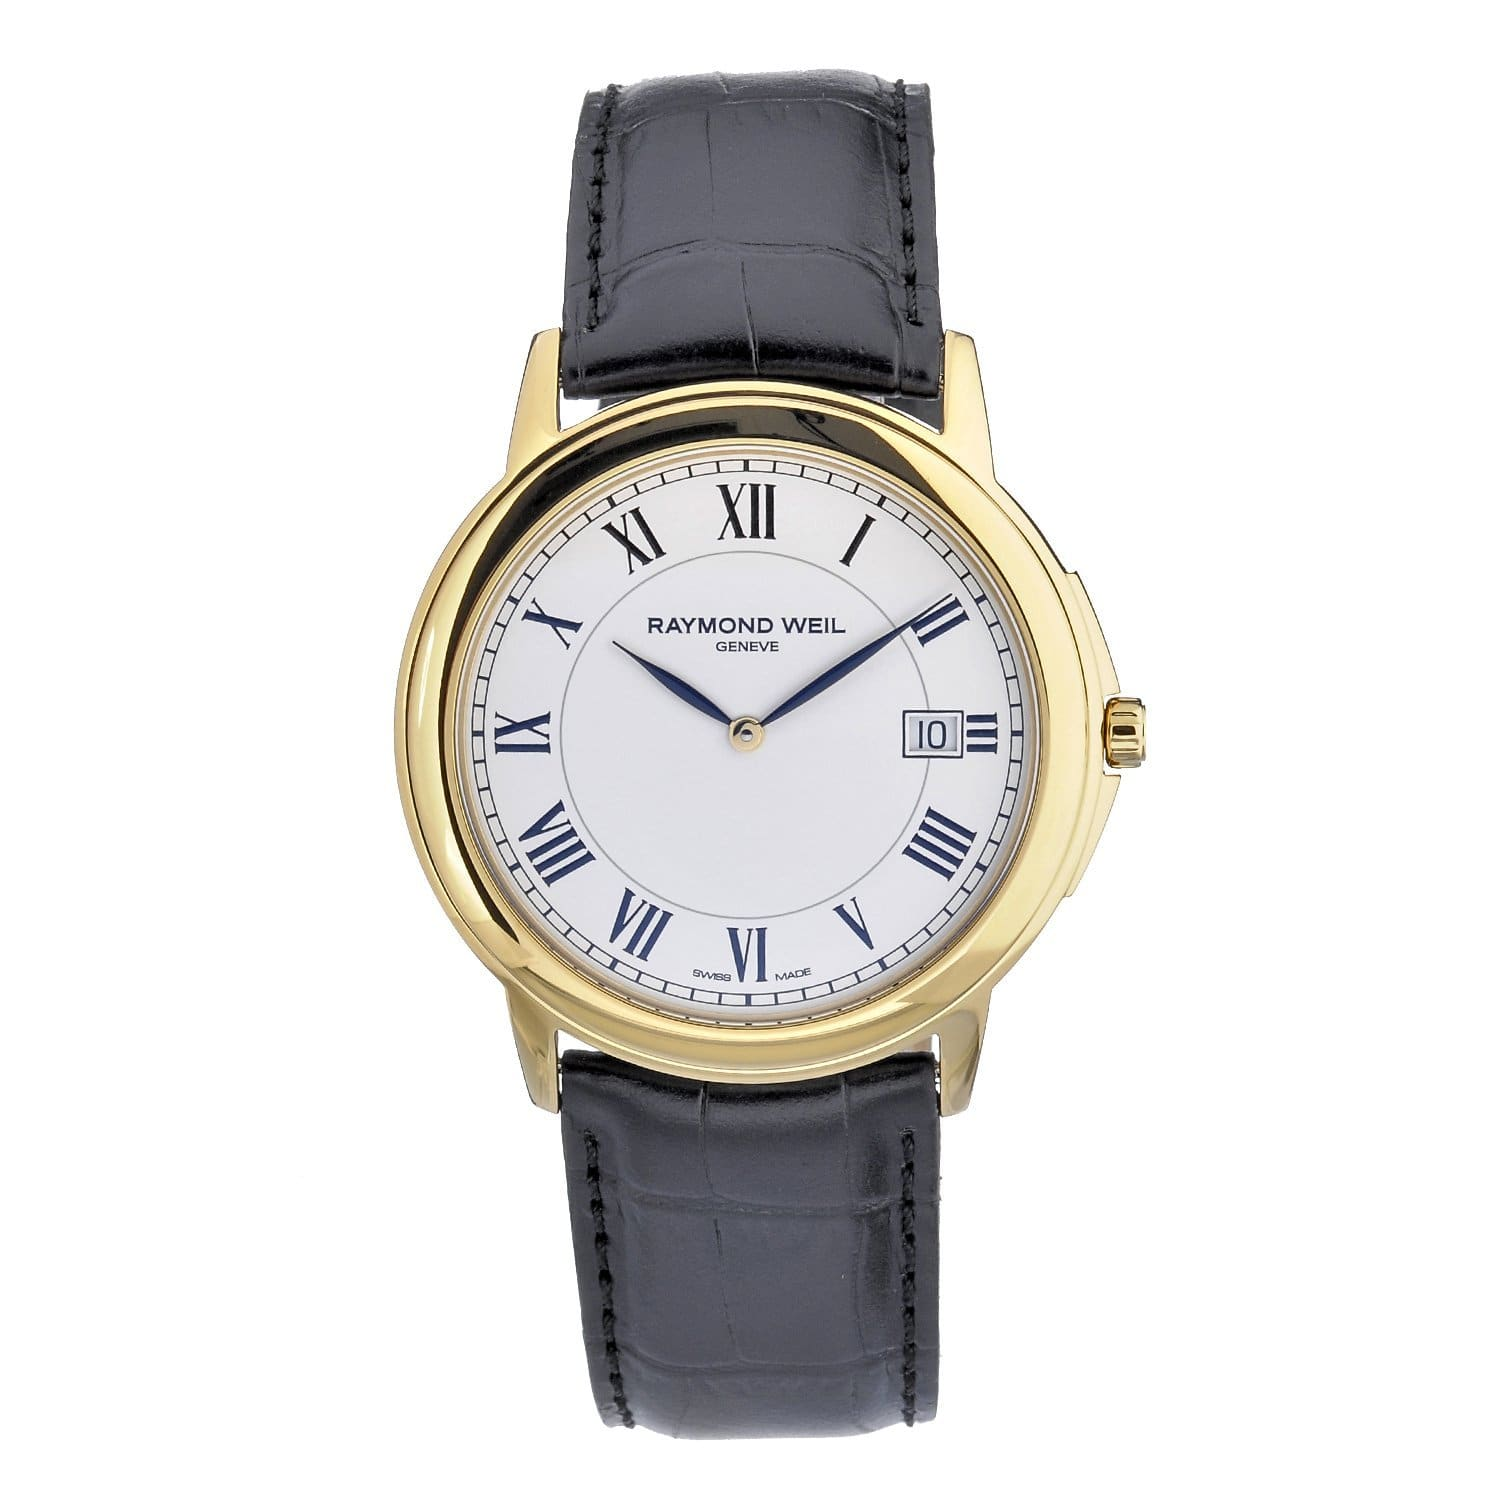 Raymond Weil Men's Tradition Leather Strap Watch|https://ak1.ostkcdn.com/images/products/80/529/P14648266.jpg?impolicy=medium